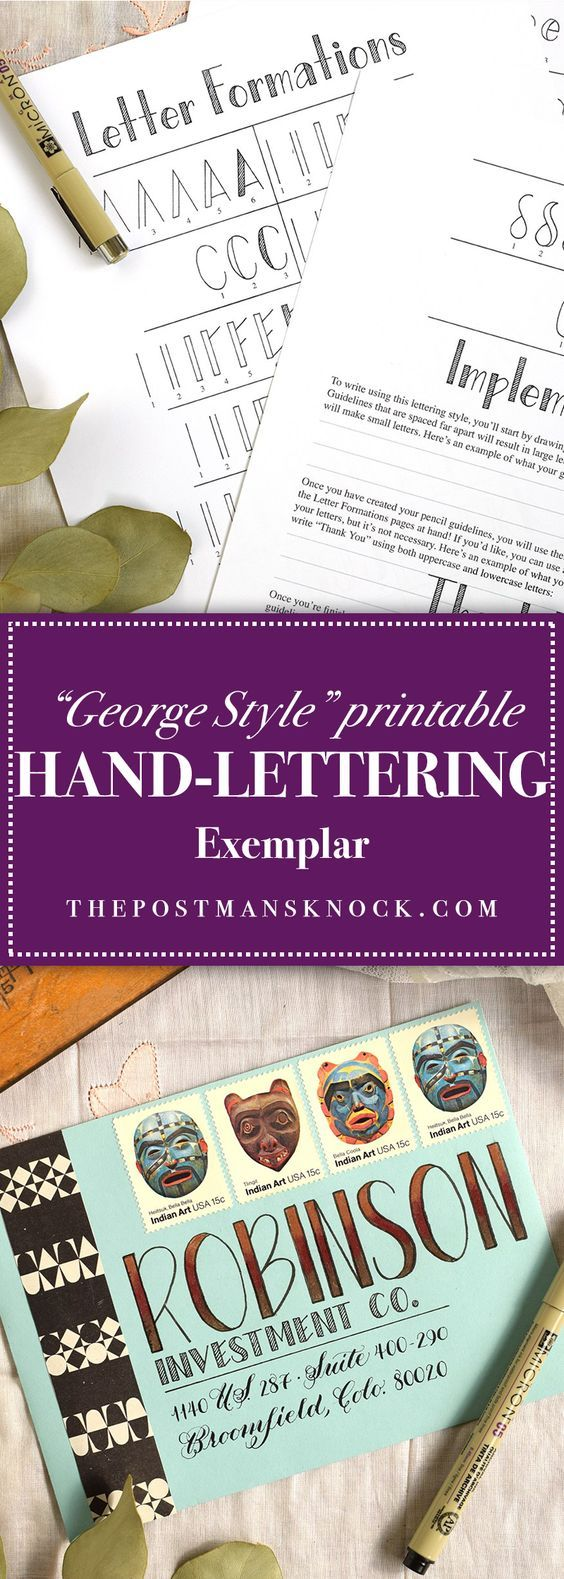 """George Style"" Printable Hand-Lettering Exemplar"